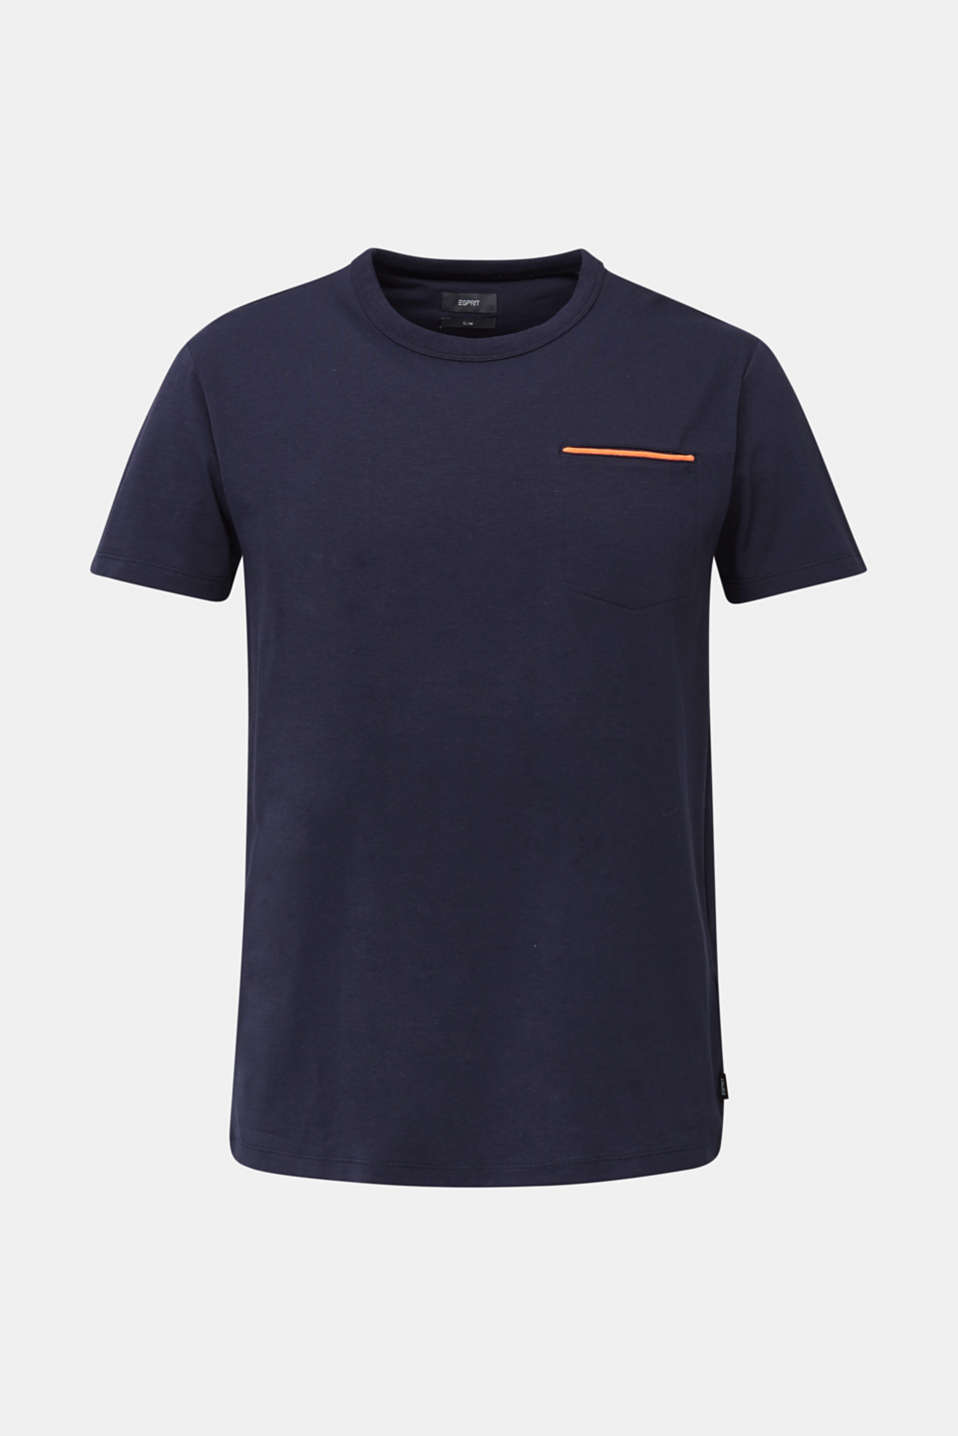 Jersey T-shirt with a pocket and COOLMAX®, NAVY, detail image number 5